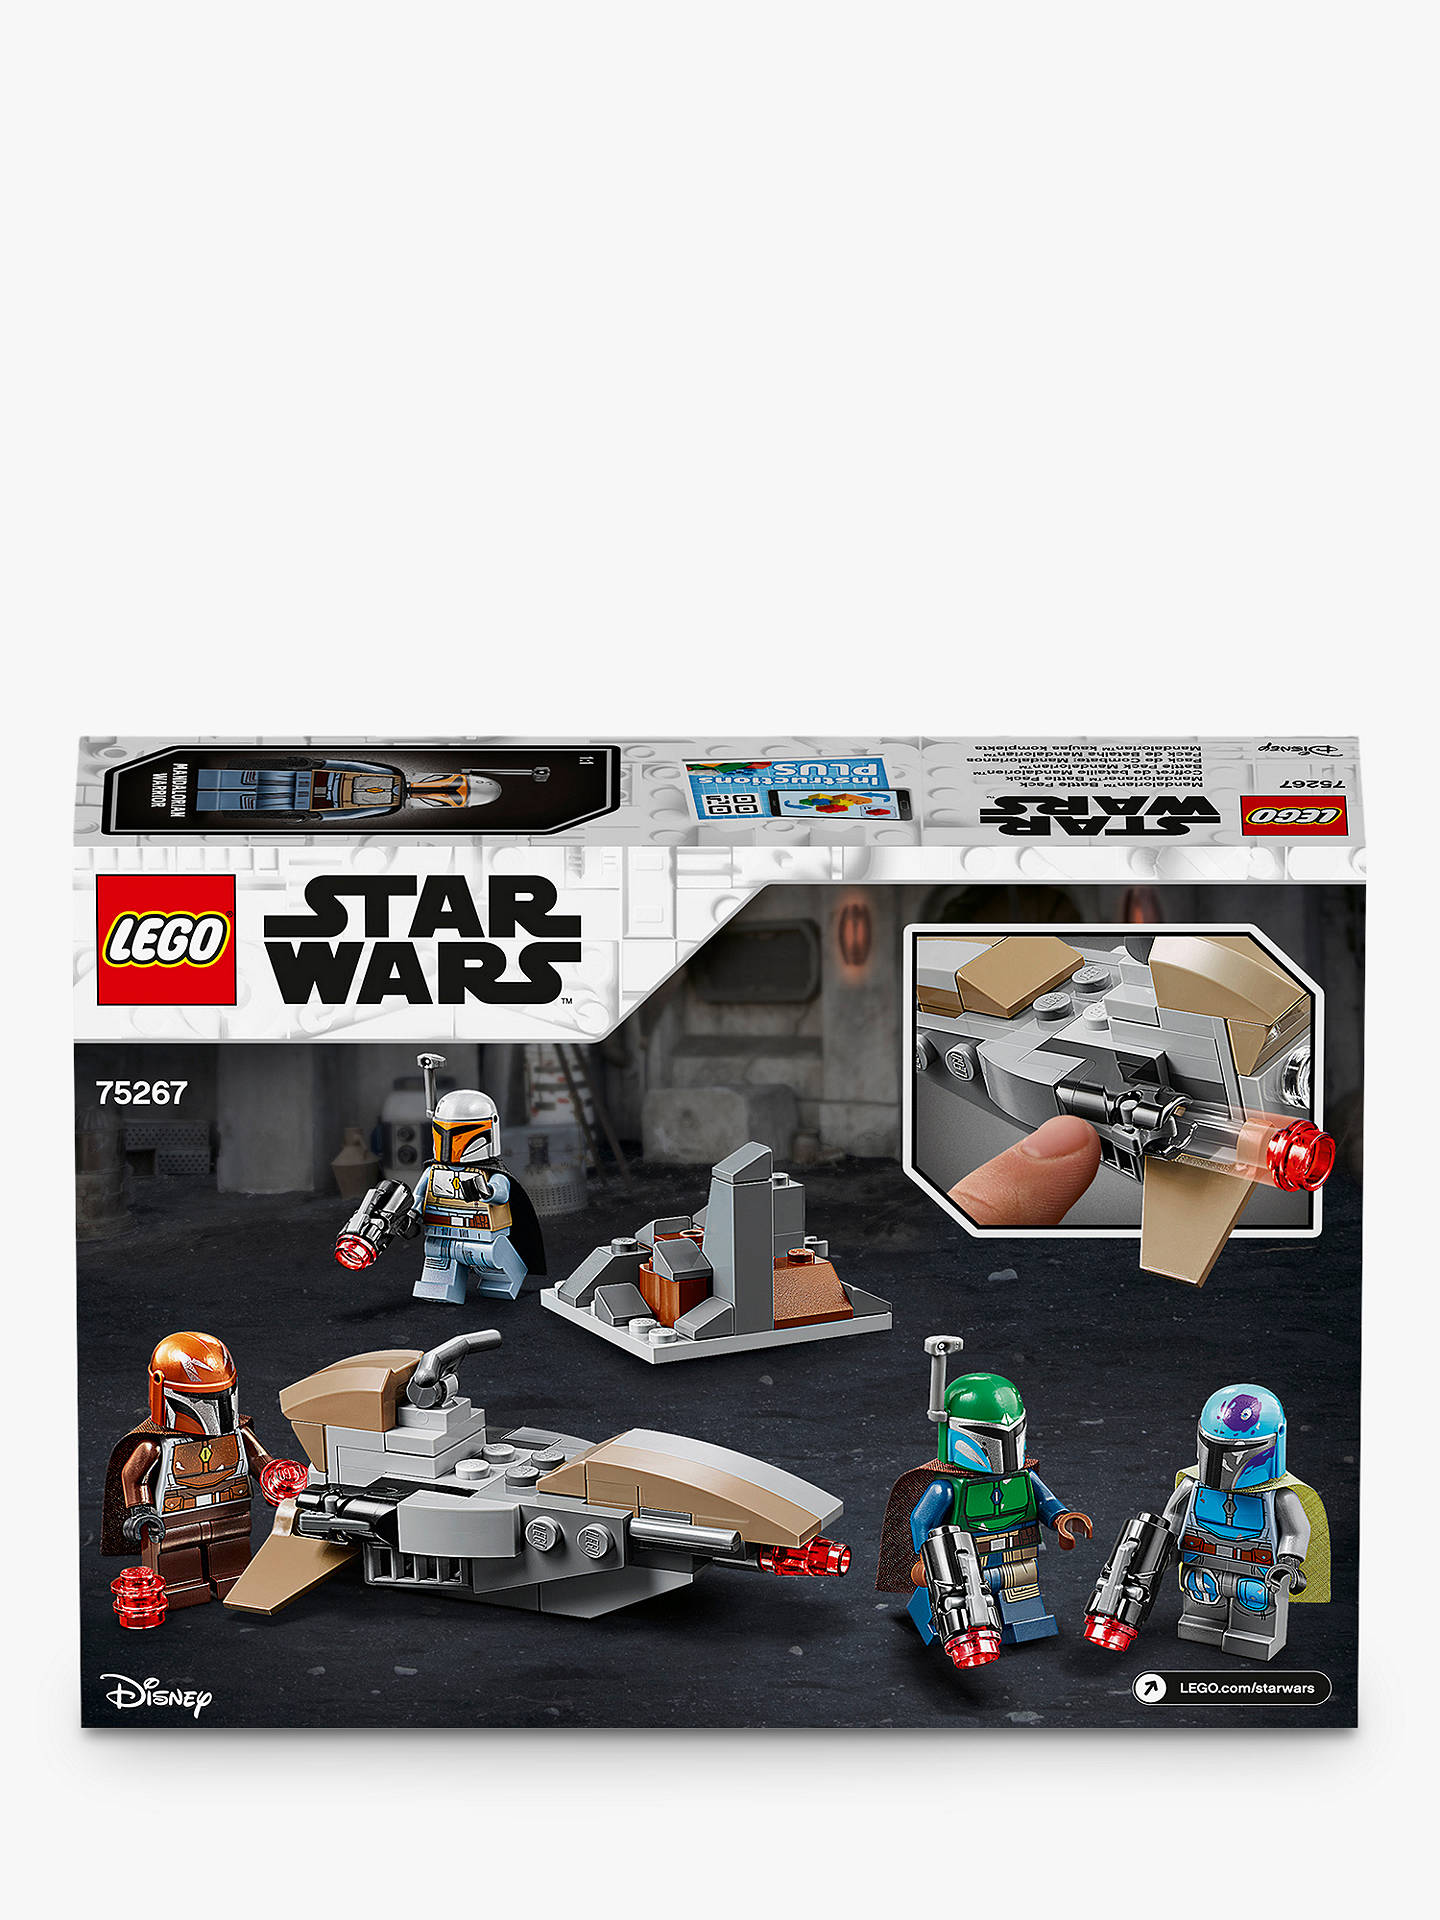 Pour lego minifigures Mandalorien Star Wars-This Is the Way 3 Pack